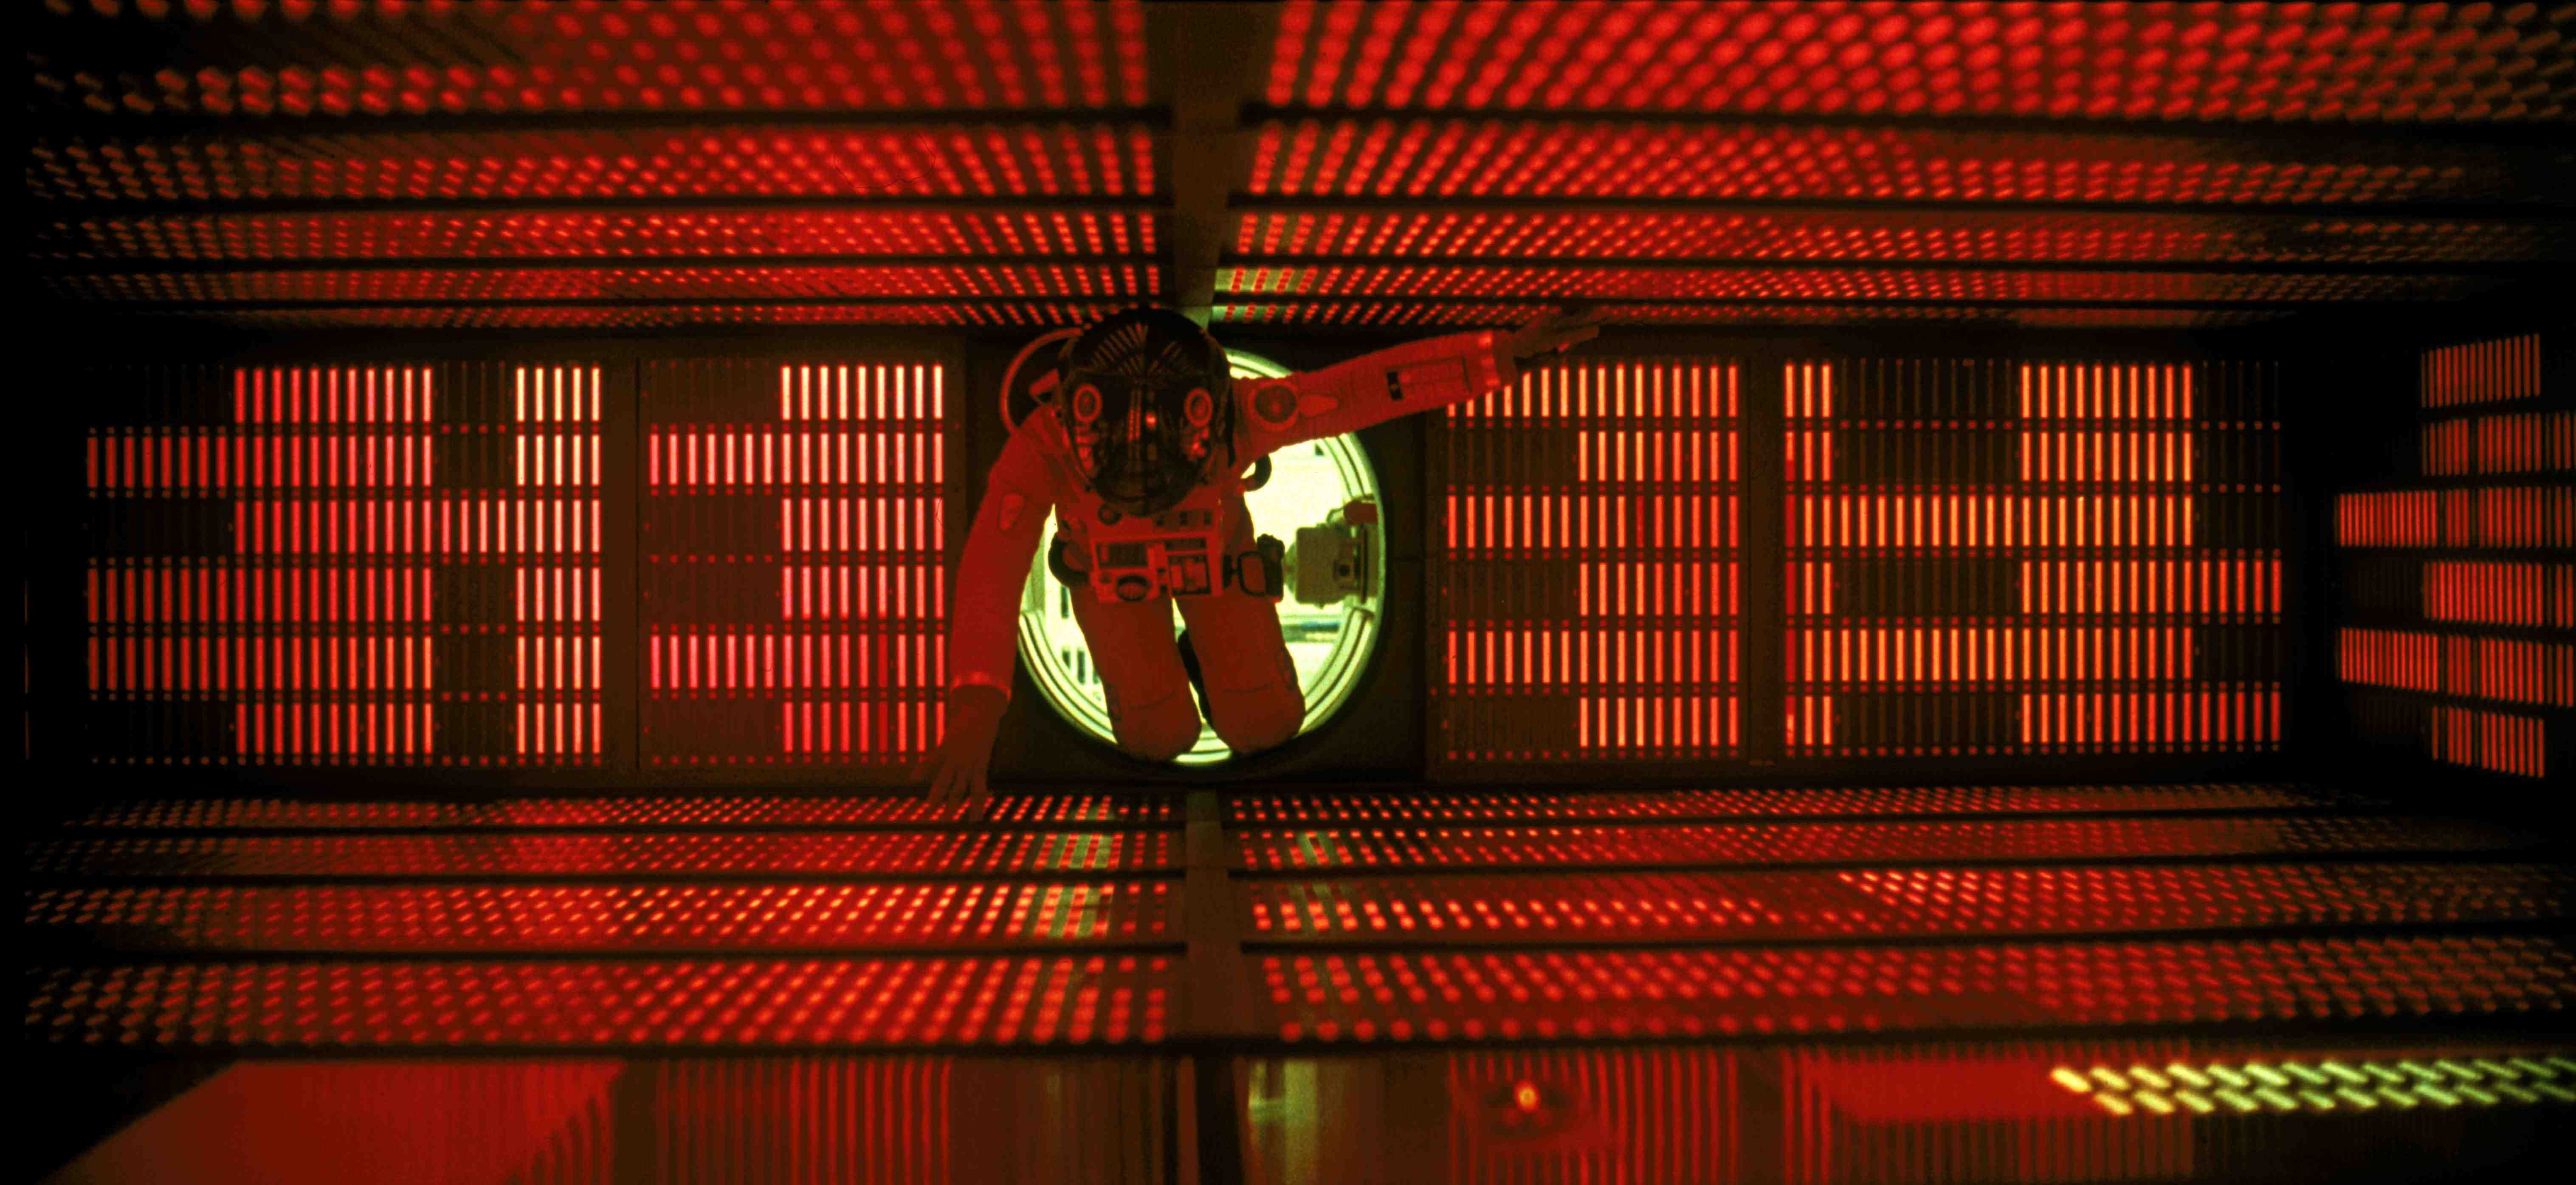 Space Odyssey Lead Pic 2001 A Space Odyssey Space Odyssey Kubrick Cinematography